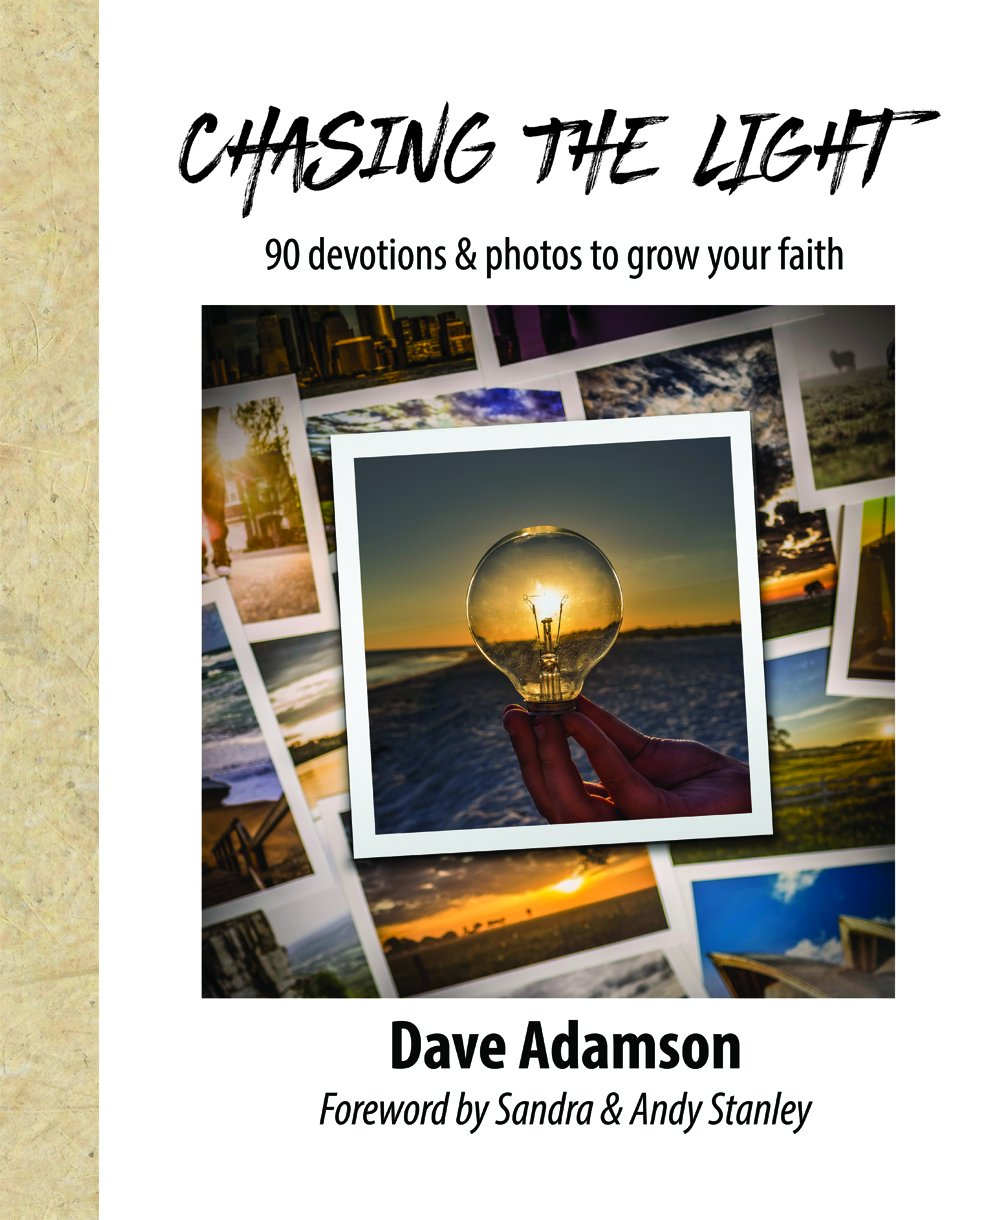 Chasing The Light: 90 Devotions & Photos to Grow your Faith: Dave Adamson,  Andy Stanley, Sandra Stanley: 9780997636802: Amazon.com: Books